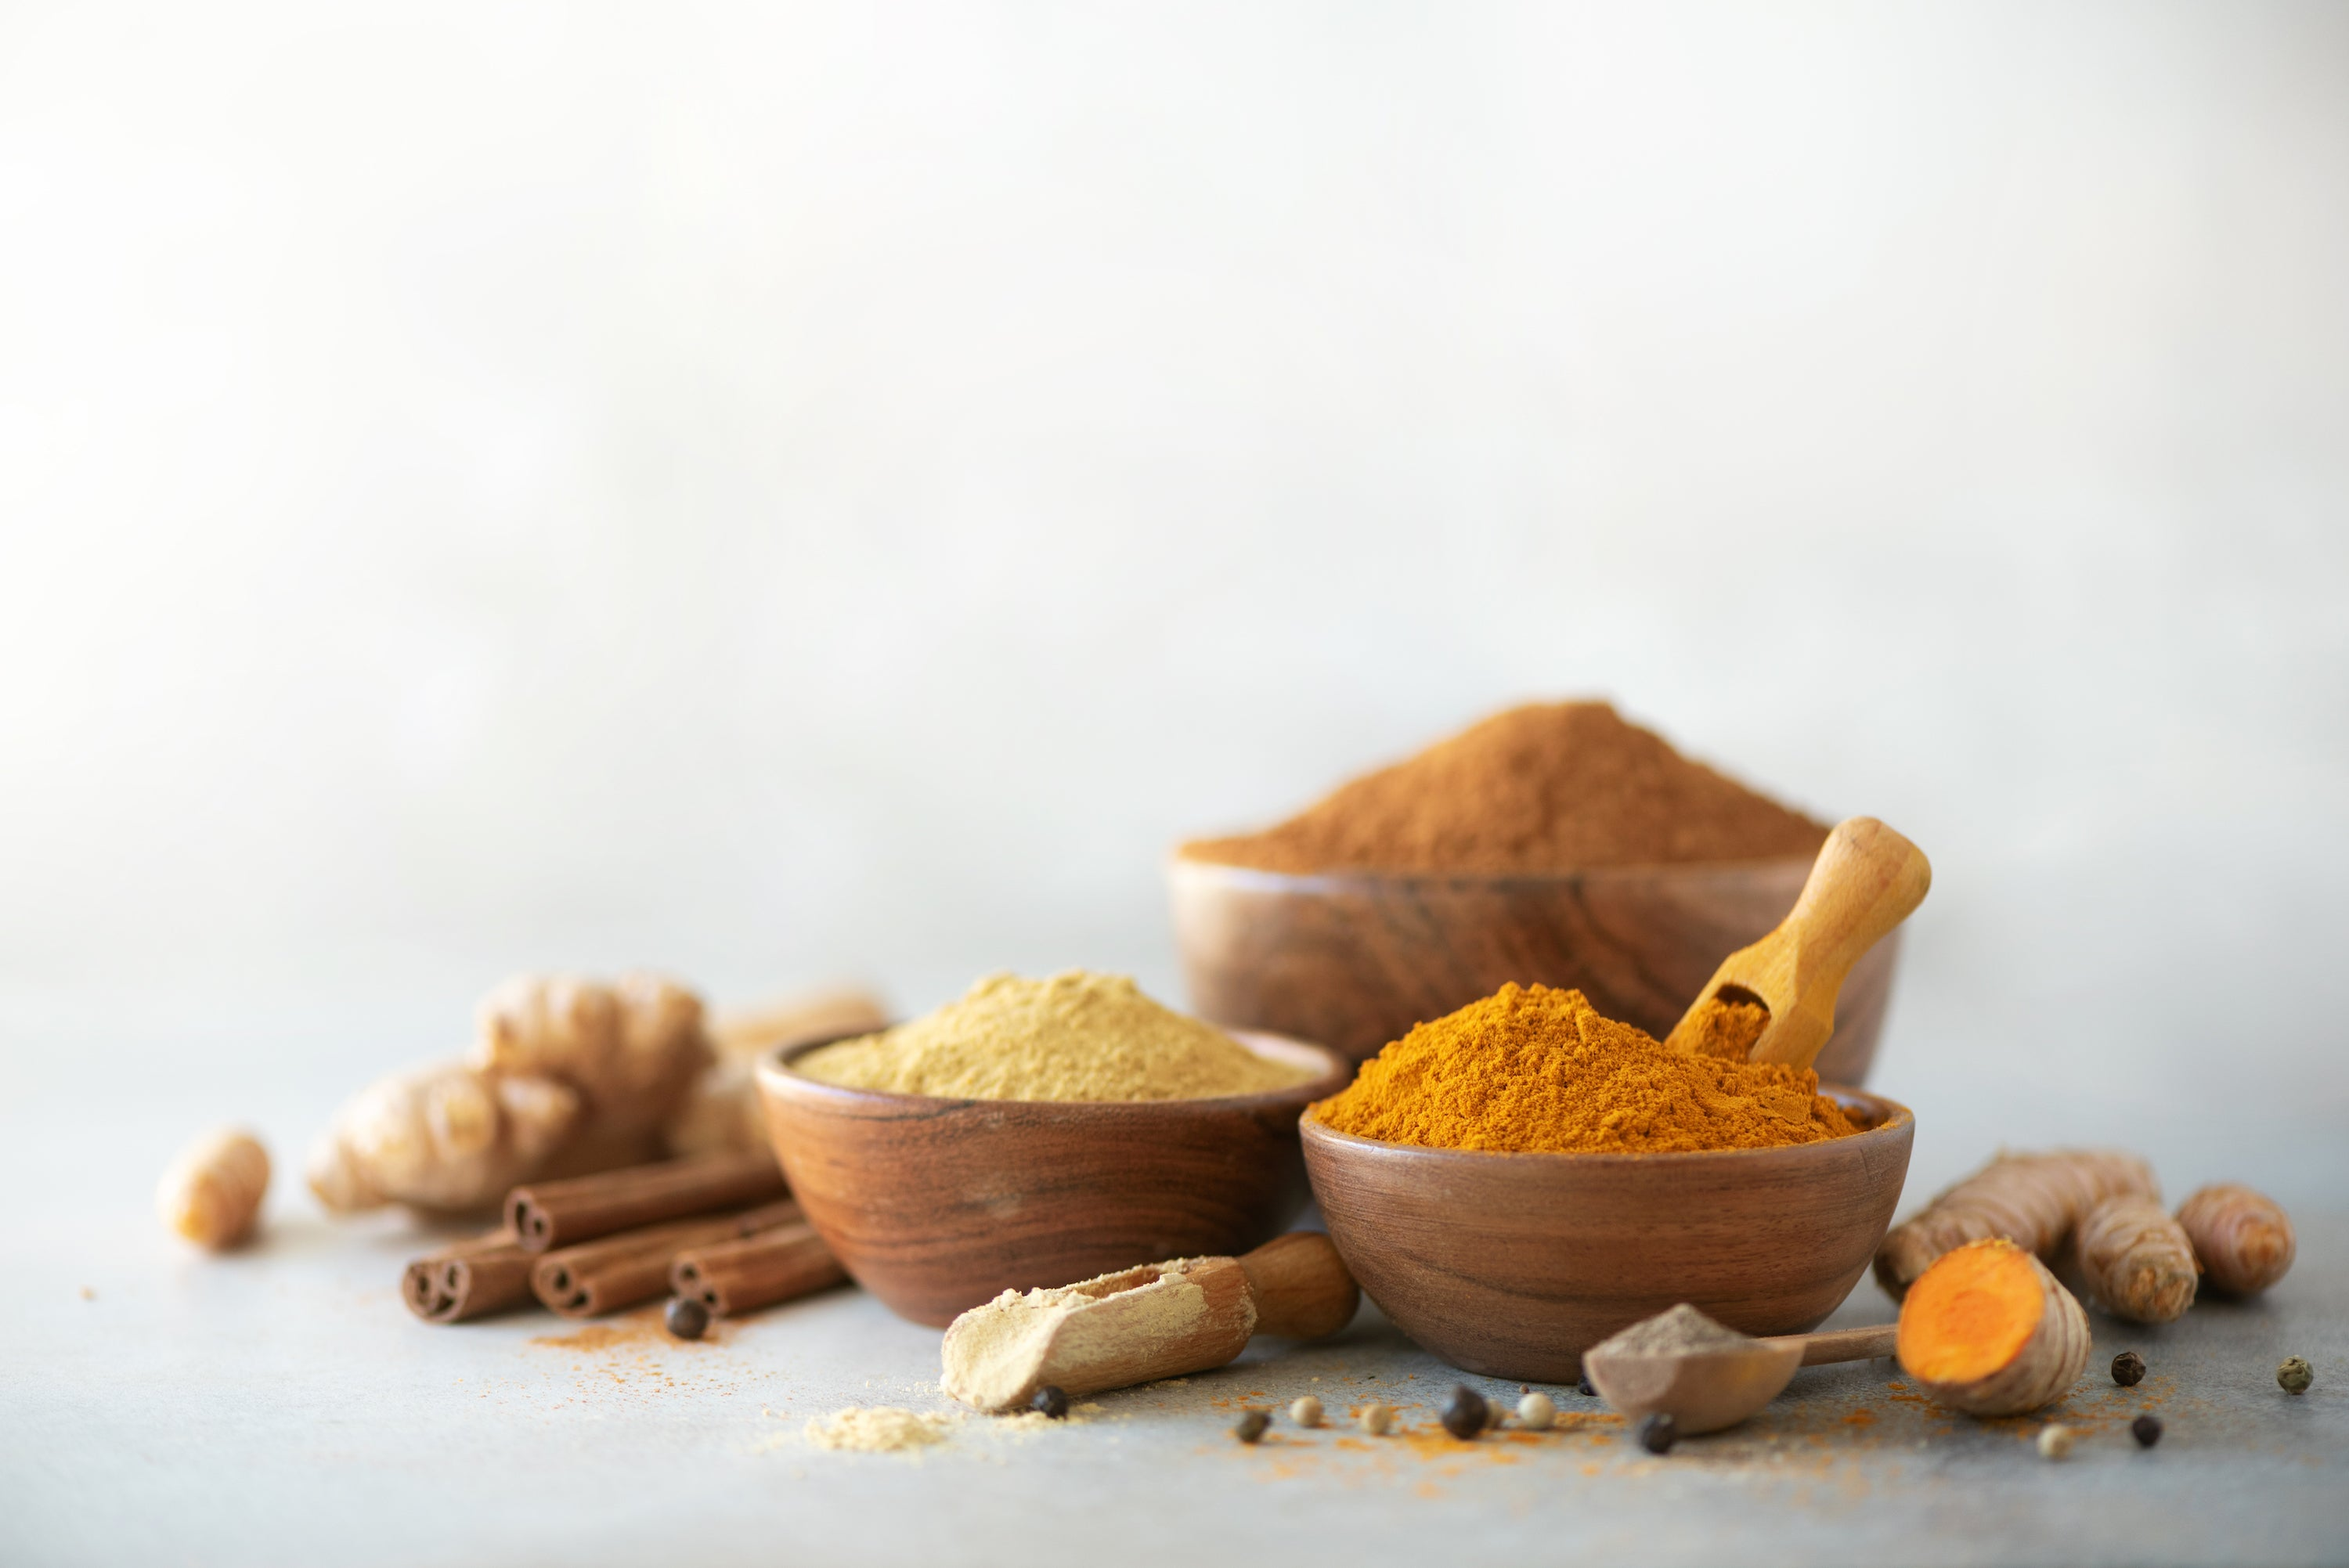 ginger and turmeric ground in bowls with roots on table